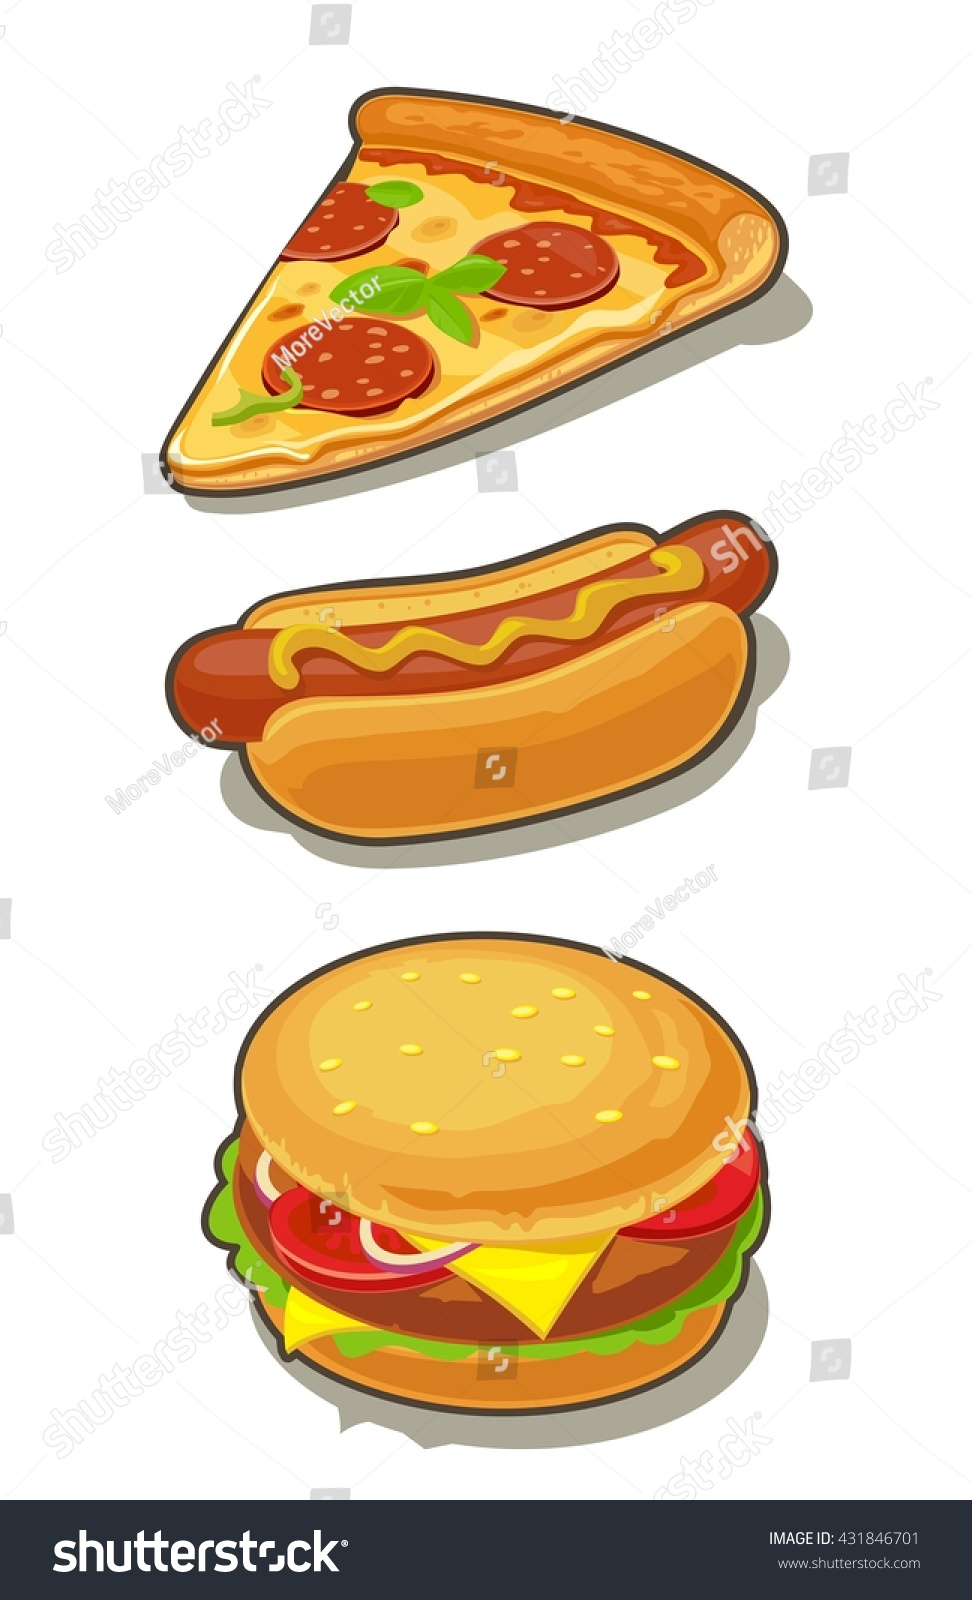 Cartoon Pictures Of A Hot Dog